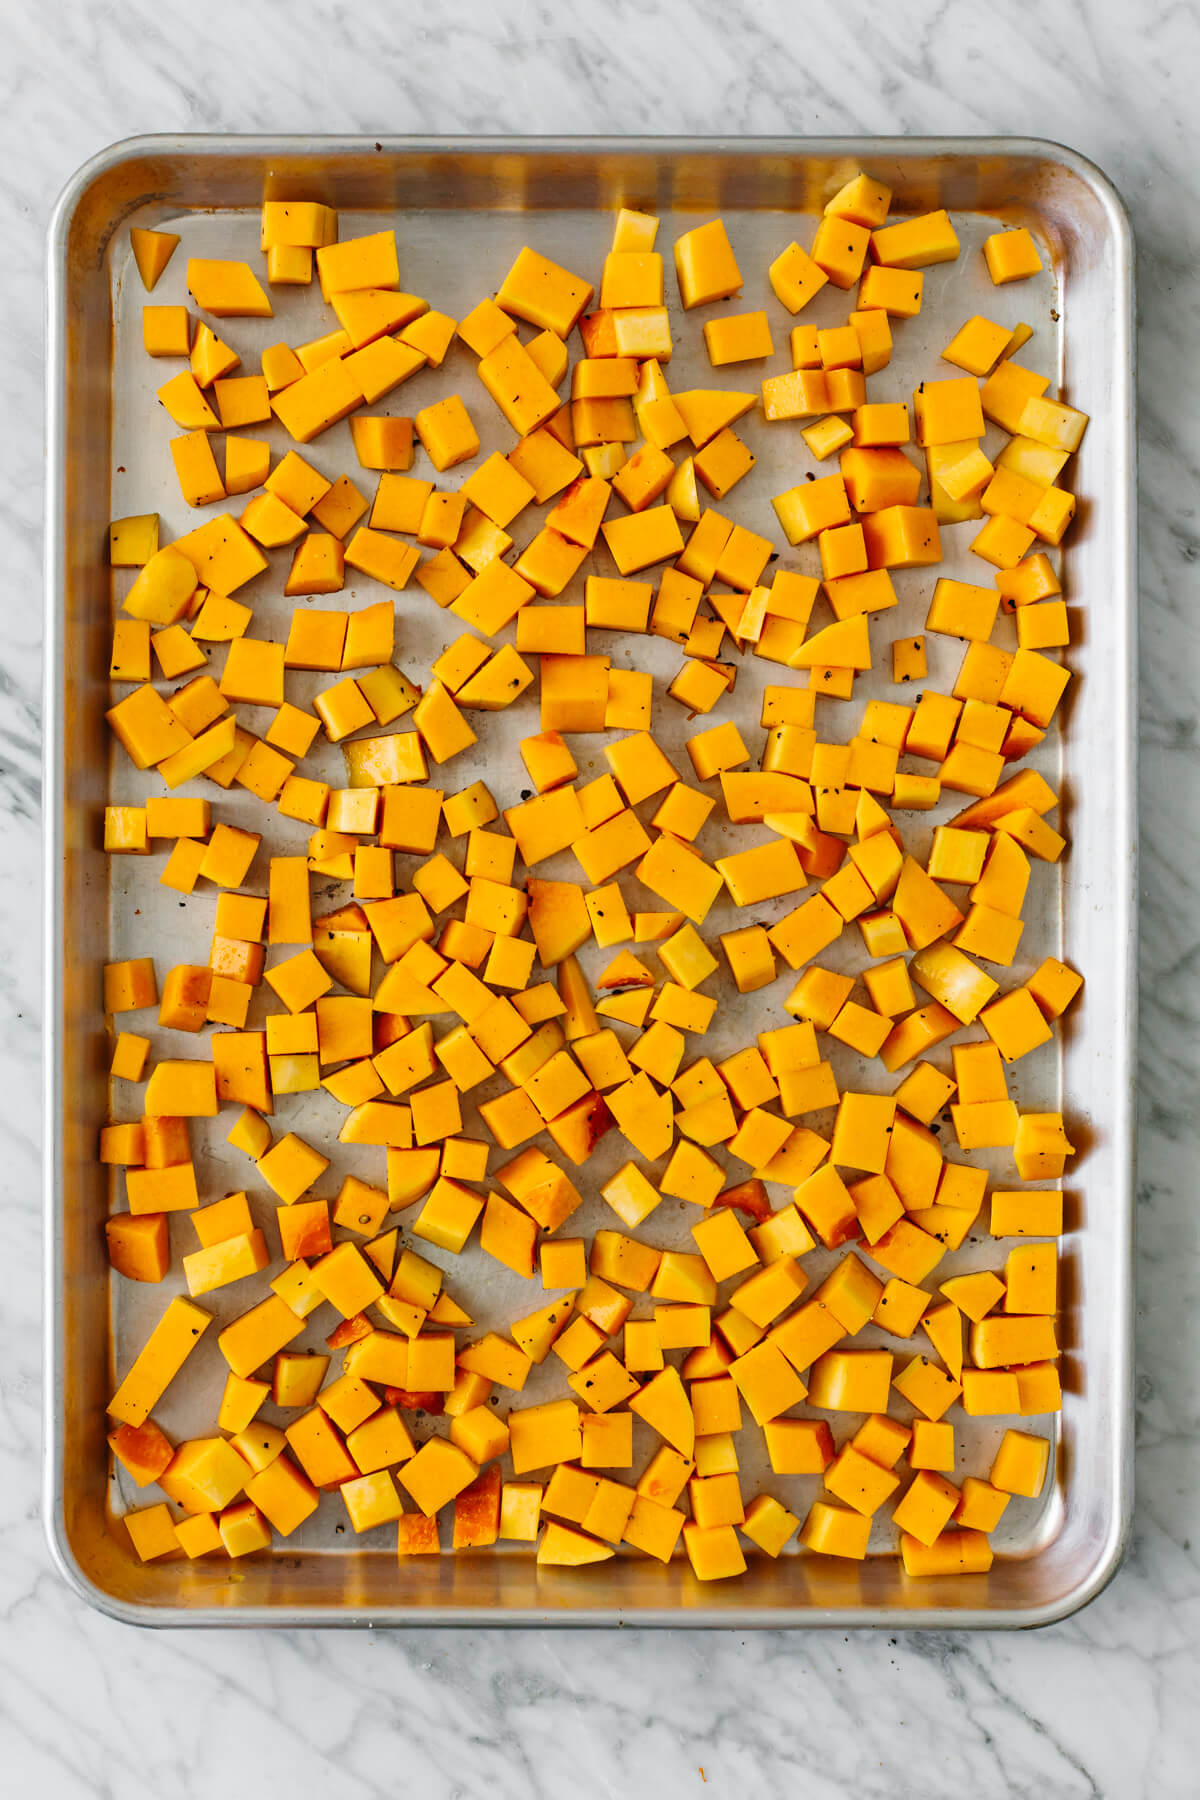 Diced and cubed butternut squash on a baking sheet.